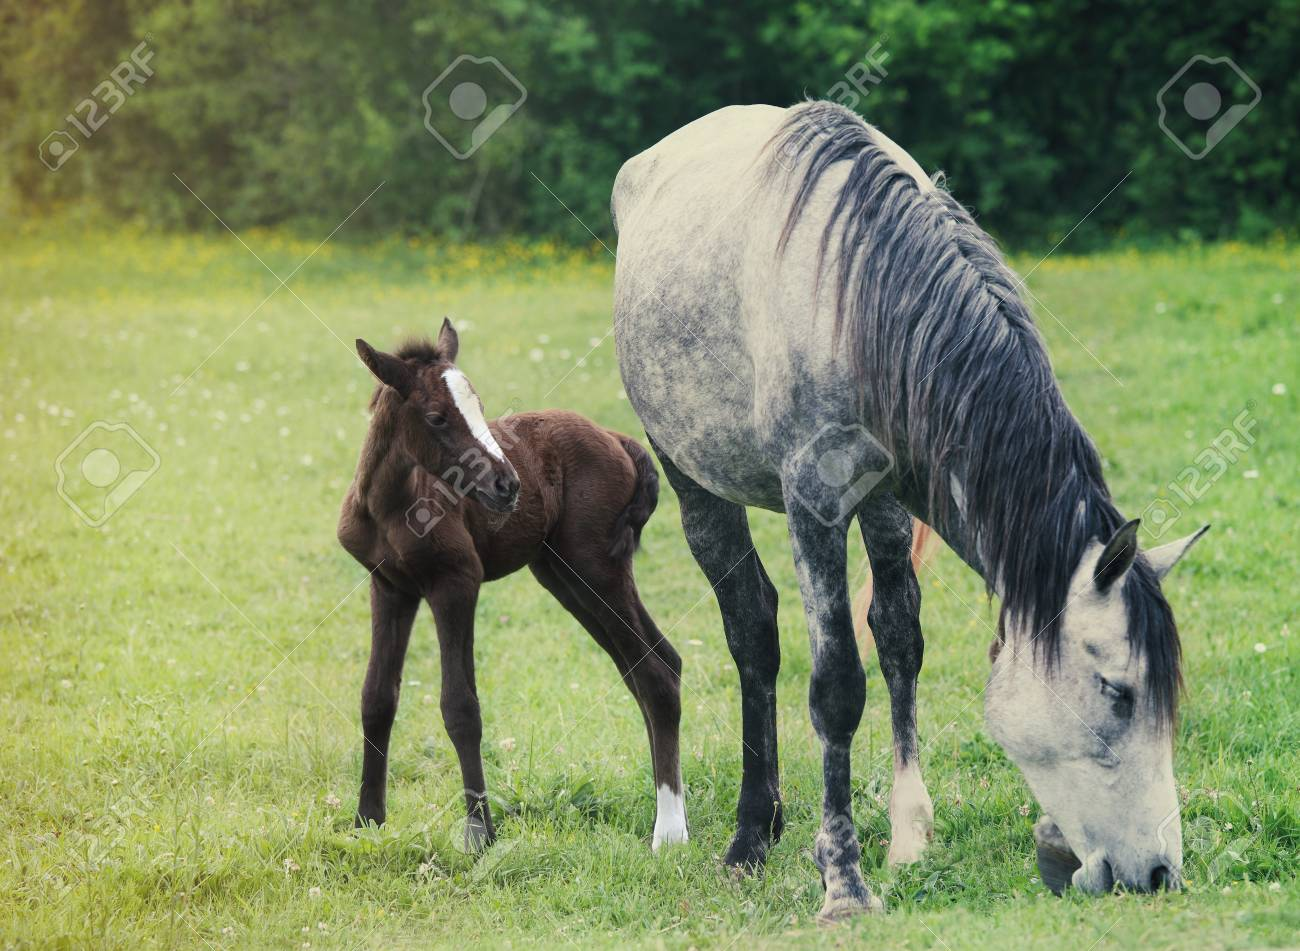 Newborn Baby Horse With Mother On The Green Grass Springtime Stock Photo Picture And Royalty Free Image Image 27724809